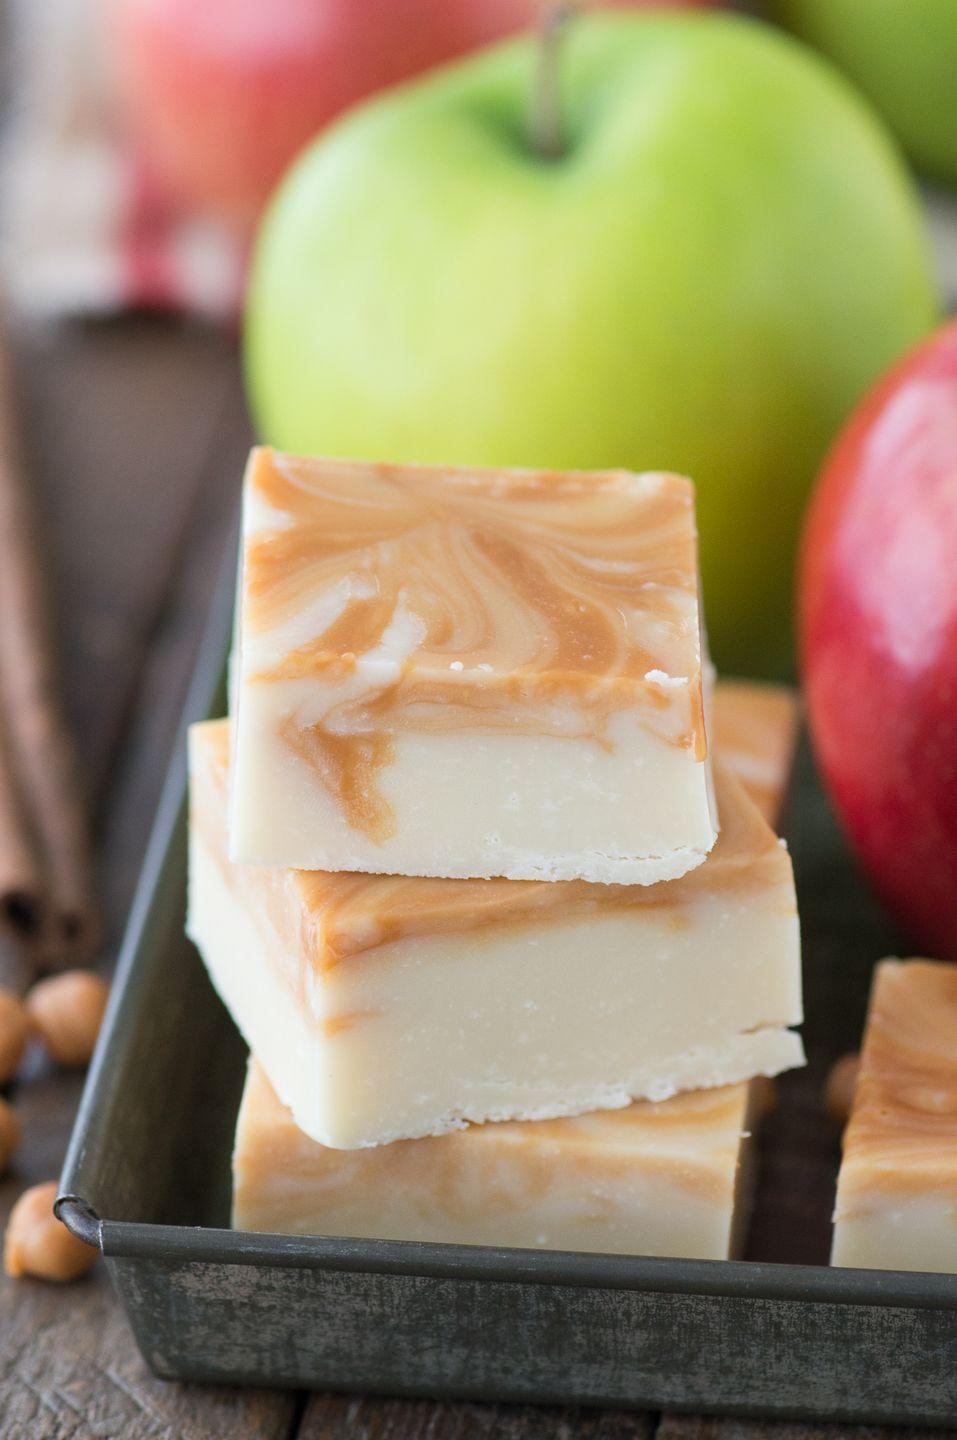 "<p>An easy fudge recipe is sure to satisfy your sweet tooth.</p><p><strong>Get the recipe at <a href=""https://thefirstyearblog.com/caramel-apple-fudge/"" rel=""nofollow noopener"" target=""_blank"" data-ylk=""slk:The First Year"" class=""link rapid-noclick-resp"">The First Year</a>.</strong></p><p><a class=""link rapid-noclick-resp"" href=""https://www.amazon.com/Wilton-Perfect-Results-Non-Stick-Multipack/dp/B07328J6QJ?tag=syn-yahoo-20&ascsubtag=%5Bartid%7C10050.g.650%5Bsrc%7Cyahoo-us"" rel=""nofollow noopener"" target=""_blank"" data-ylk=""slk:SHOP BAKING PANS"">SHOP BAKING PANS</a></p>"